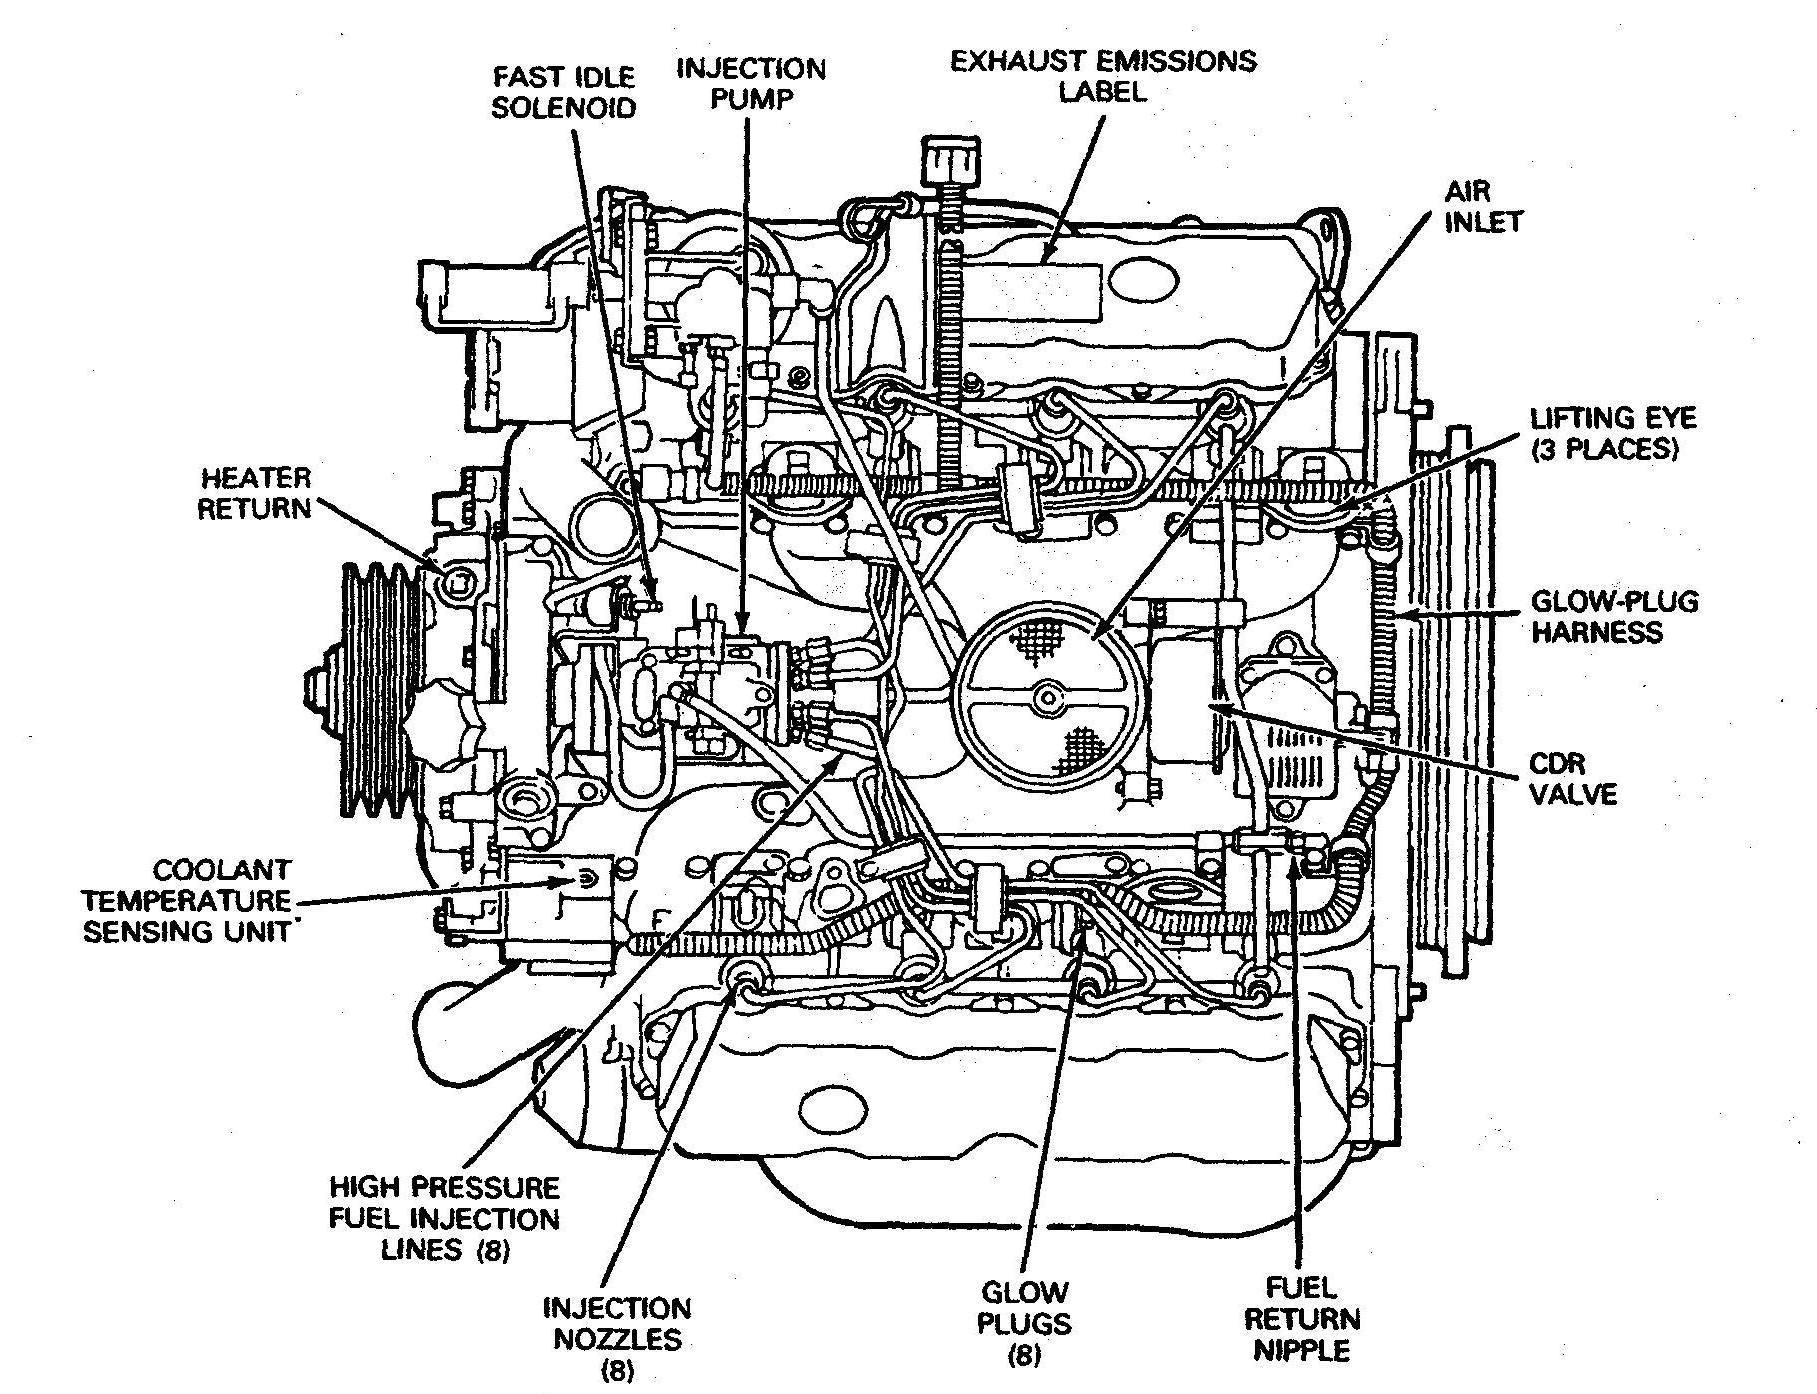 2004 Chevrolet Cavalier 2.2 Engine Schematic Diagram] 4 3 Engine Diagram Full Version Hd Quality Engine Of 2004 Chevrolet Cavalier 2.2 Engine Schematic